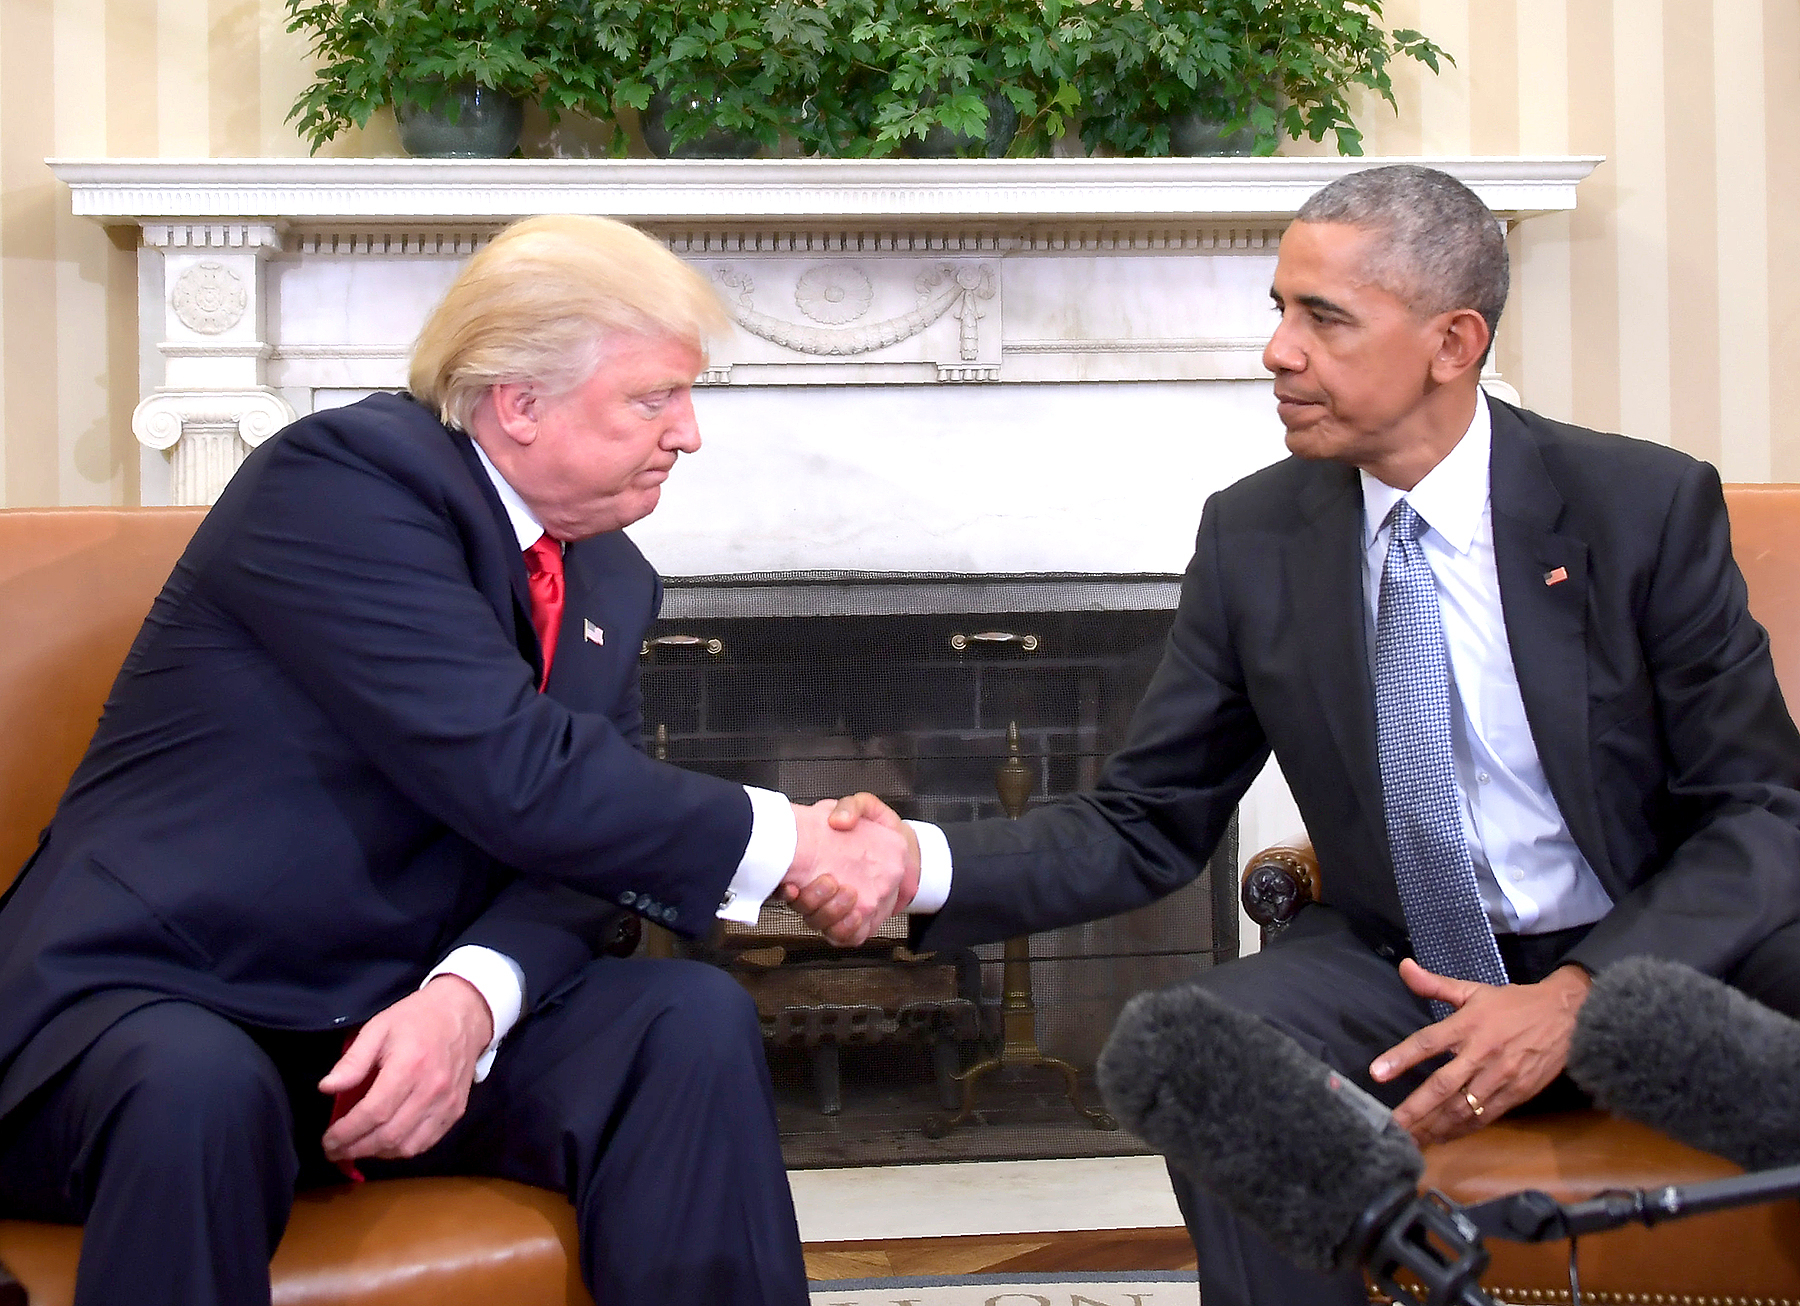 US President Barack Obama shakes hands as he meets with Republican President-elect Donald Trump on transition planning in the Oval Office at the White House on November 10, 2016 in Washington,DC.